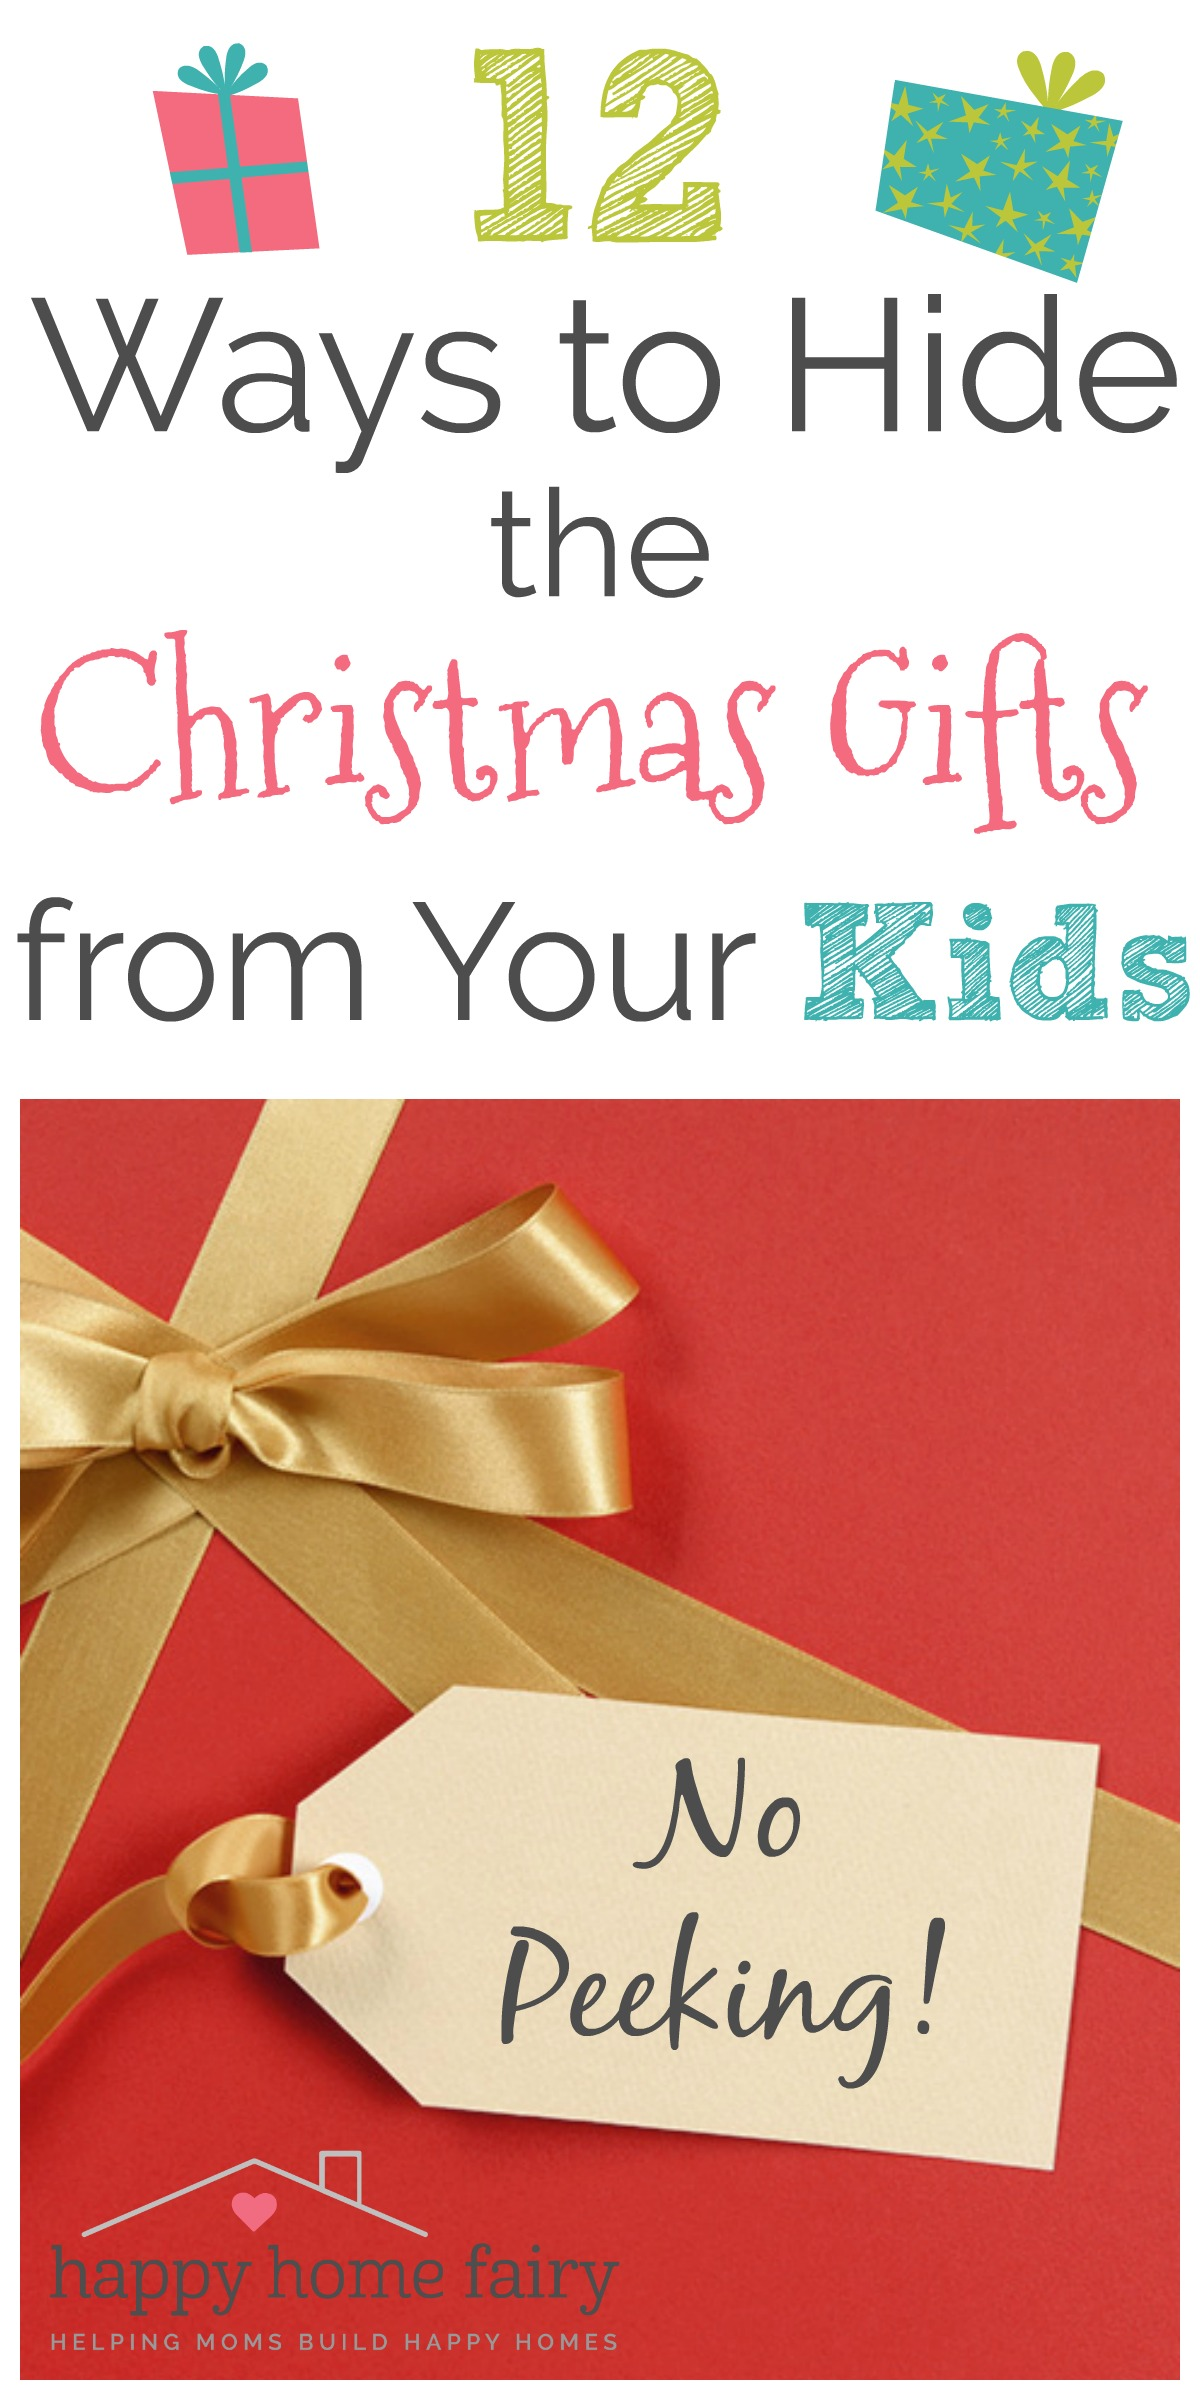 12 Ways to Hide the Christmas Gifts from Your Kids